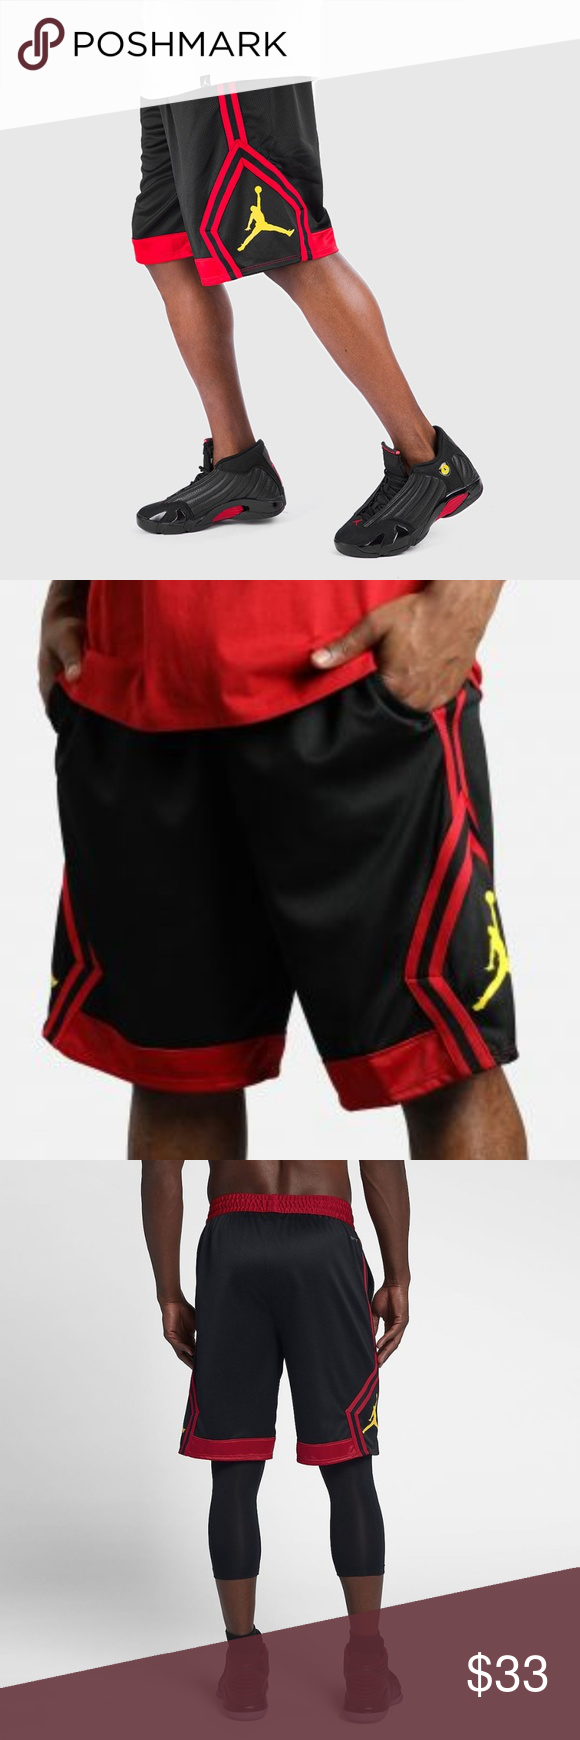 aa696f8919222d Nike Air Jordan Diamond Last Shot Basketball Short Nike Air Jordan Rise  Diamond Last Shot Basketball Shorts 887438 015 Lift your status and street  cred to ...